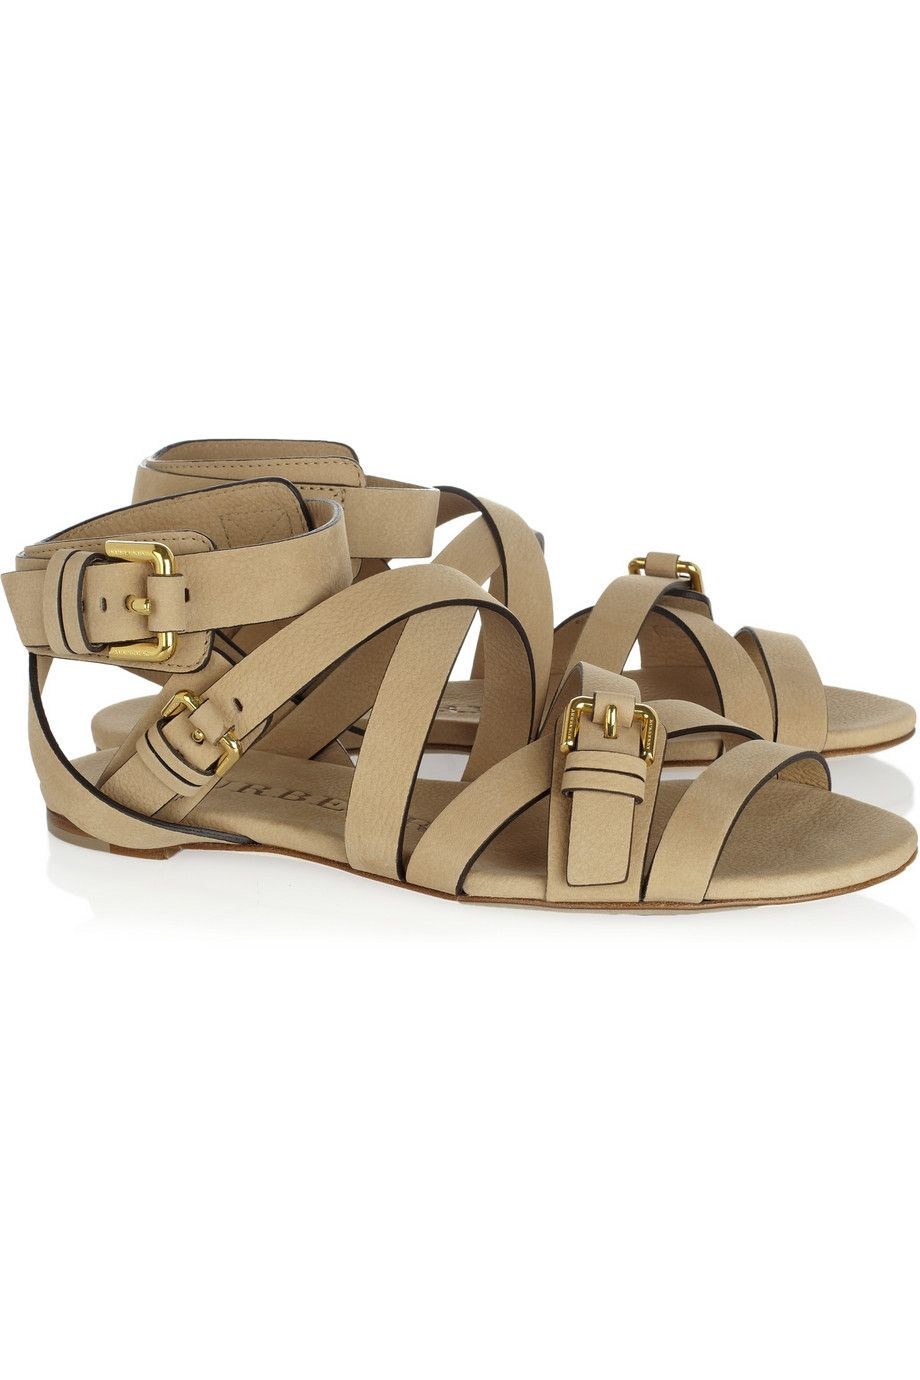 30b6bc1391 Oakley Leather Sandals « One More Soul